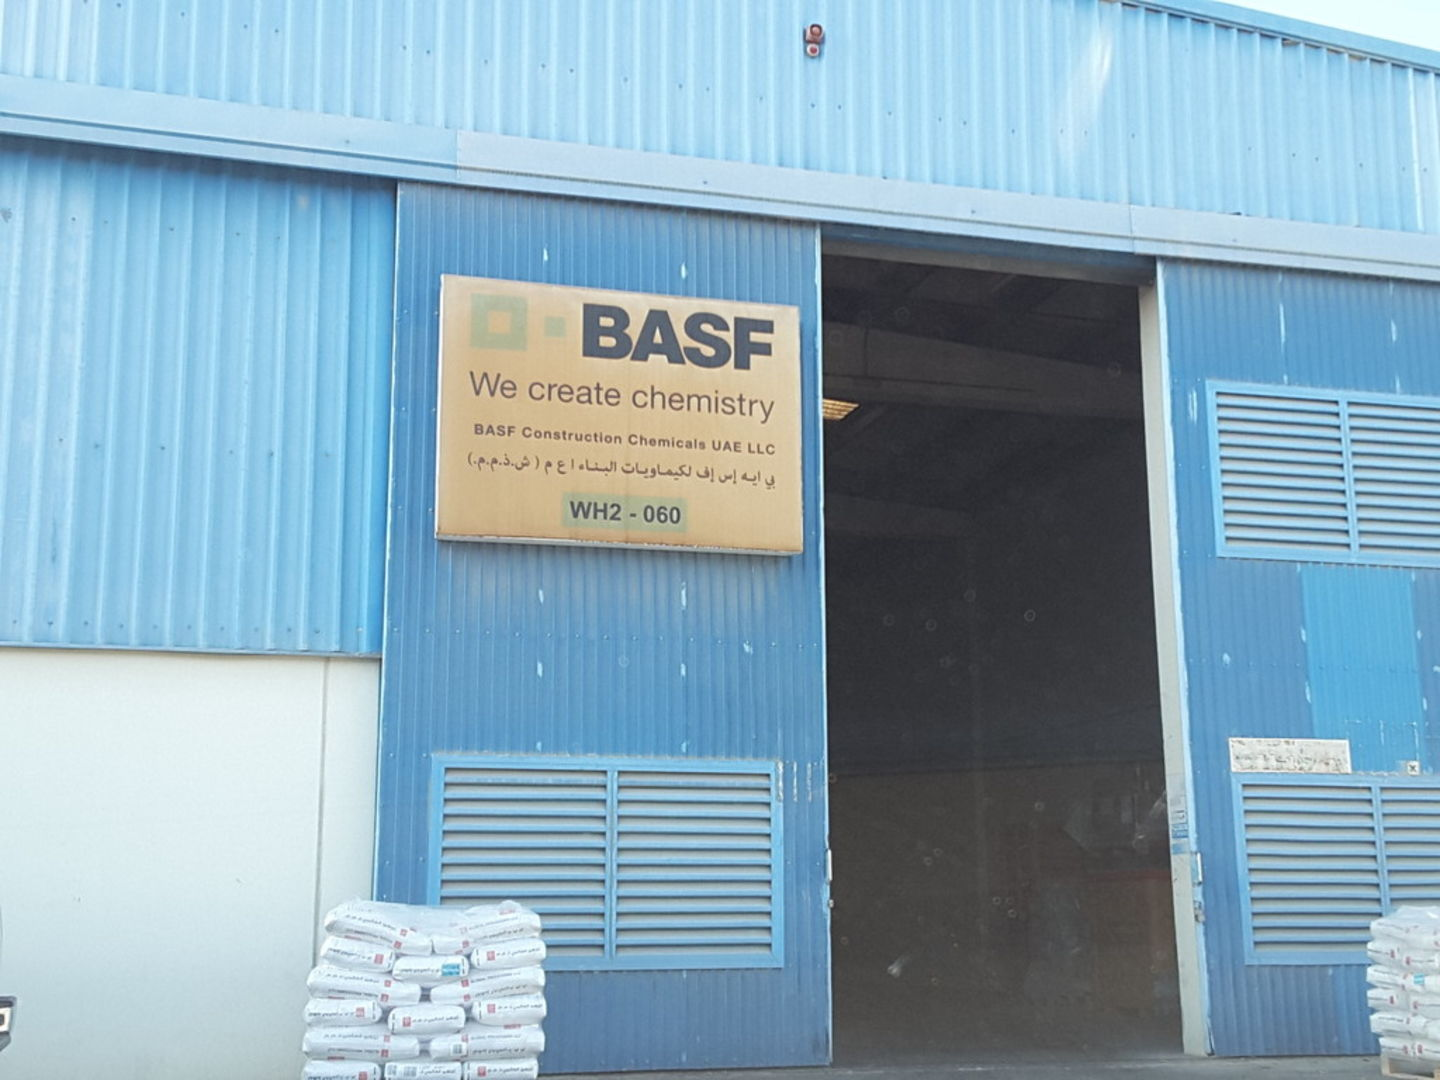 Basf Construction Chemicals Uae, (Construction & Building